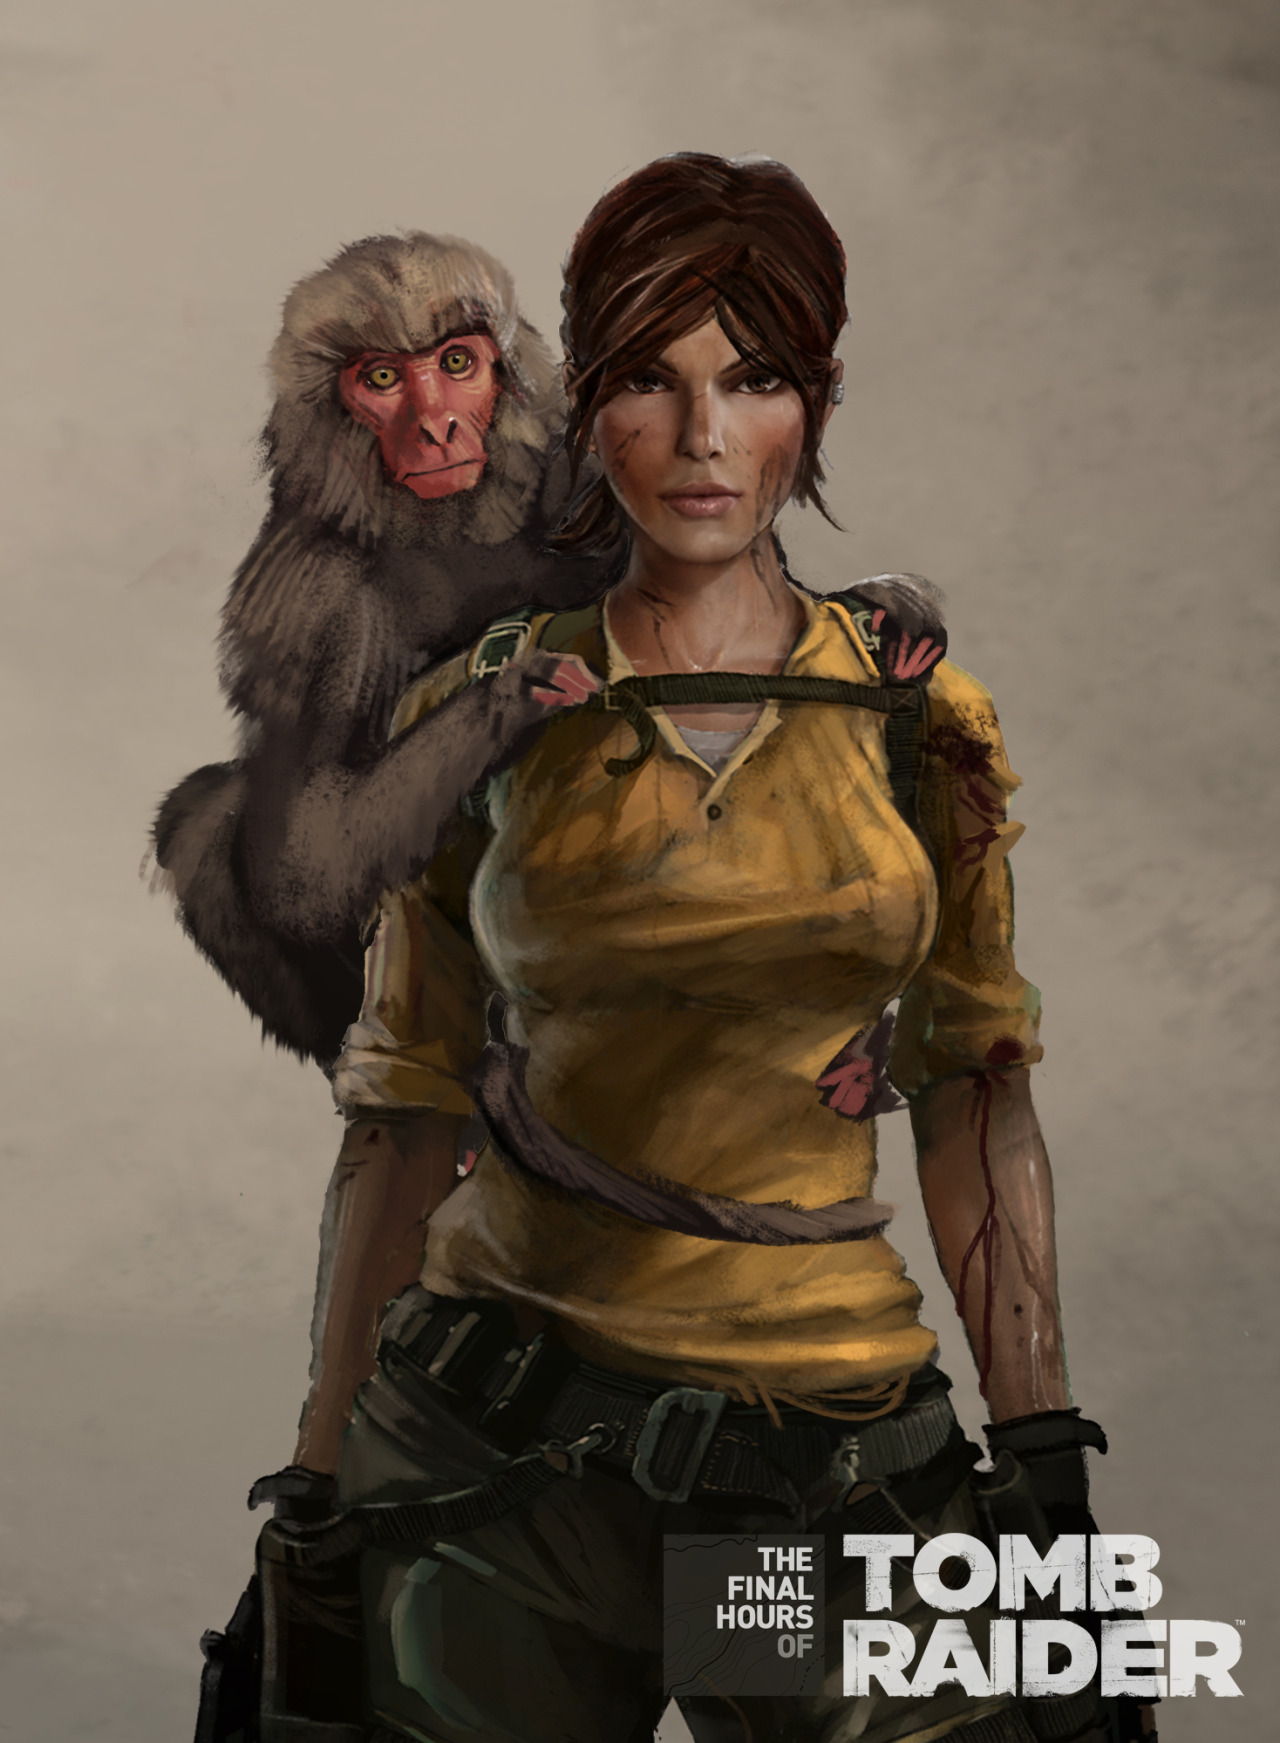 gamefreaksnz:   The Final Hours of Tomb Raider App now live  Crystal Dynamics today announced the launch of the Final Hours of Tomb Raider app for iOS, Kindle Fire and Steam.